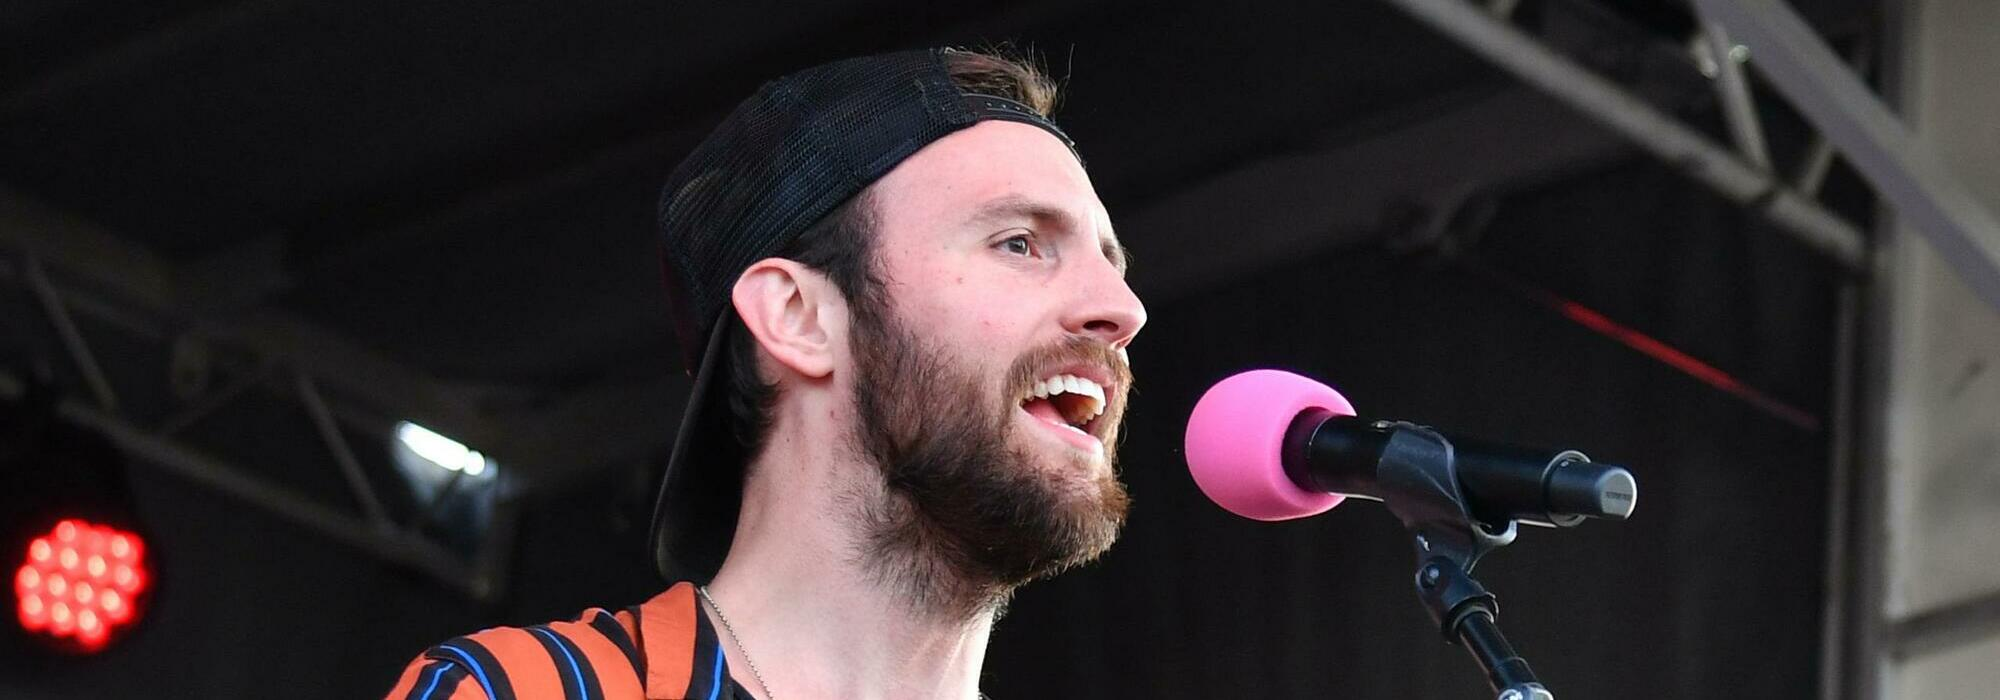 A Ruston Kelly live event